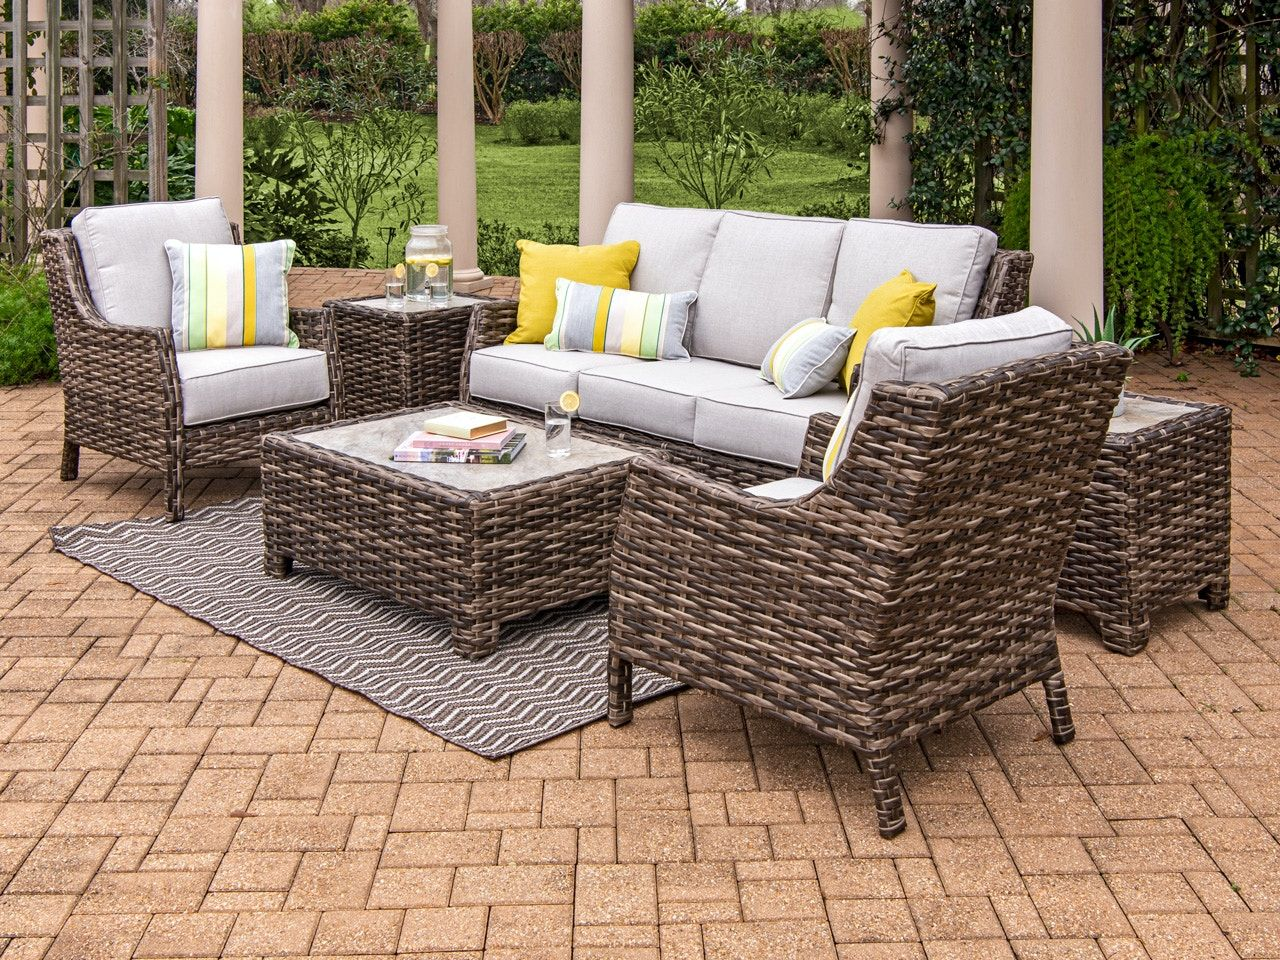 Chair King Backyard Store S Exclusive Cabo Collection Pairs Weather Tested Resin Wicker Handwoven Over A In 2020 Outdoor Wicker Outdoor Comfort Outdoor Furniture Sets